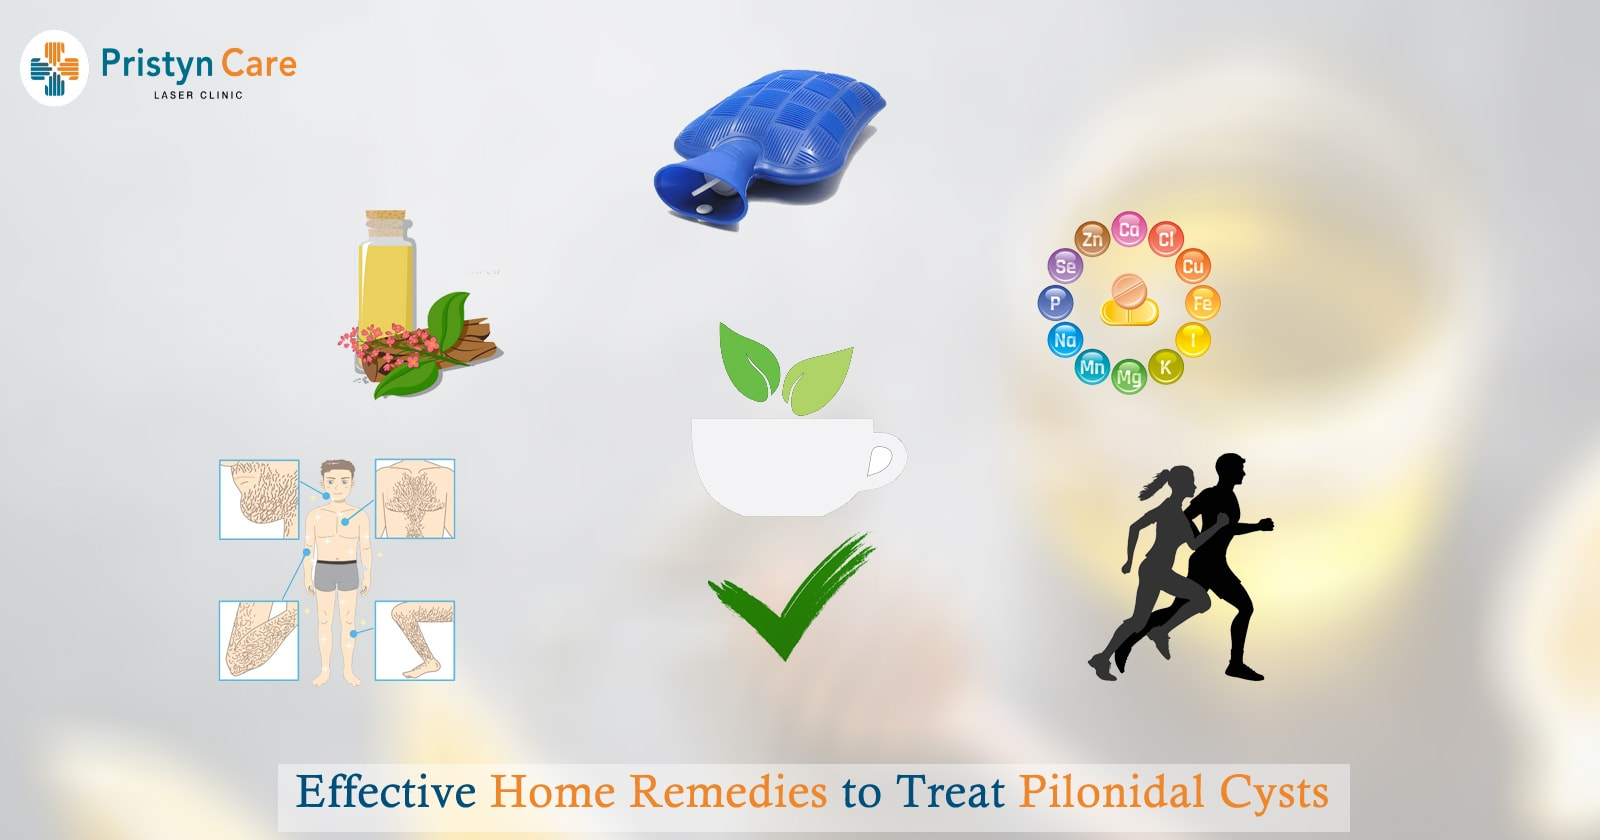 effective-home-remedies-to-treat-pilonidal-cysts-min